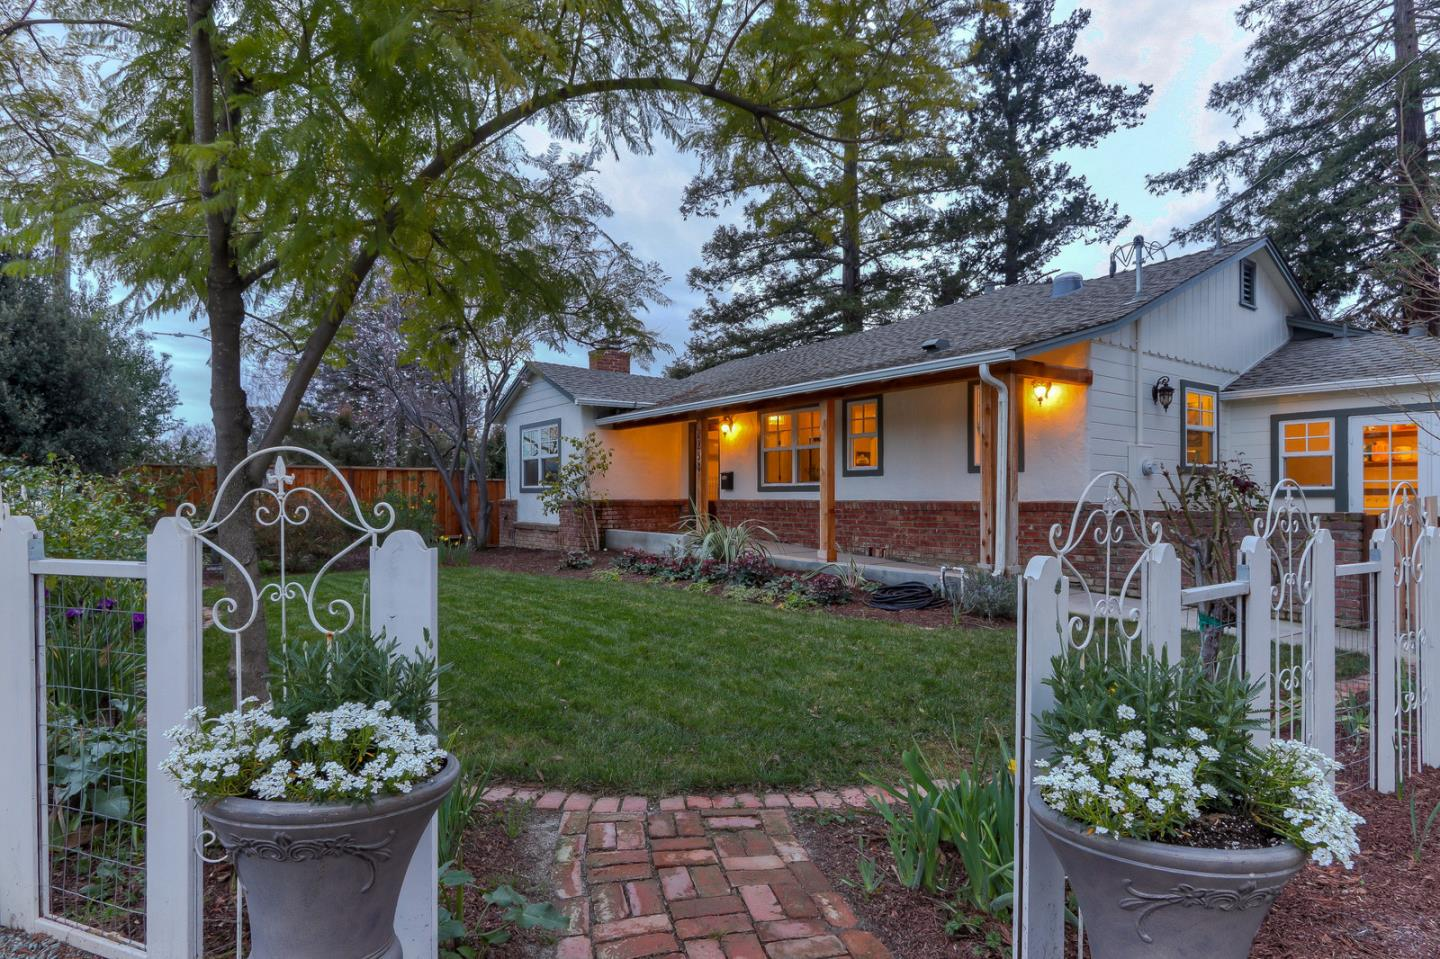 Detail Gallery Image 1 of 43 For 2238 Los Gatos Almaden Rd, San Jose, CA, 95124 - 3 Beds | 2/1 Baths